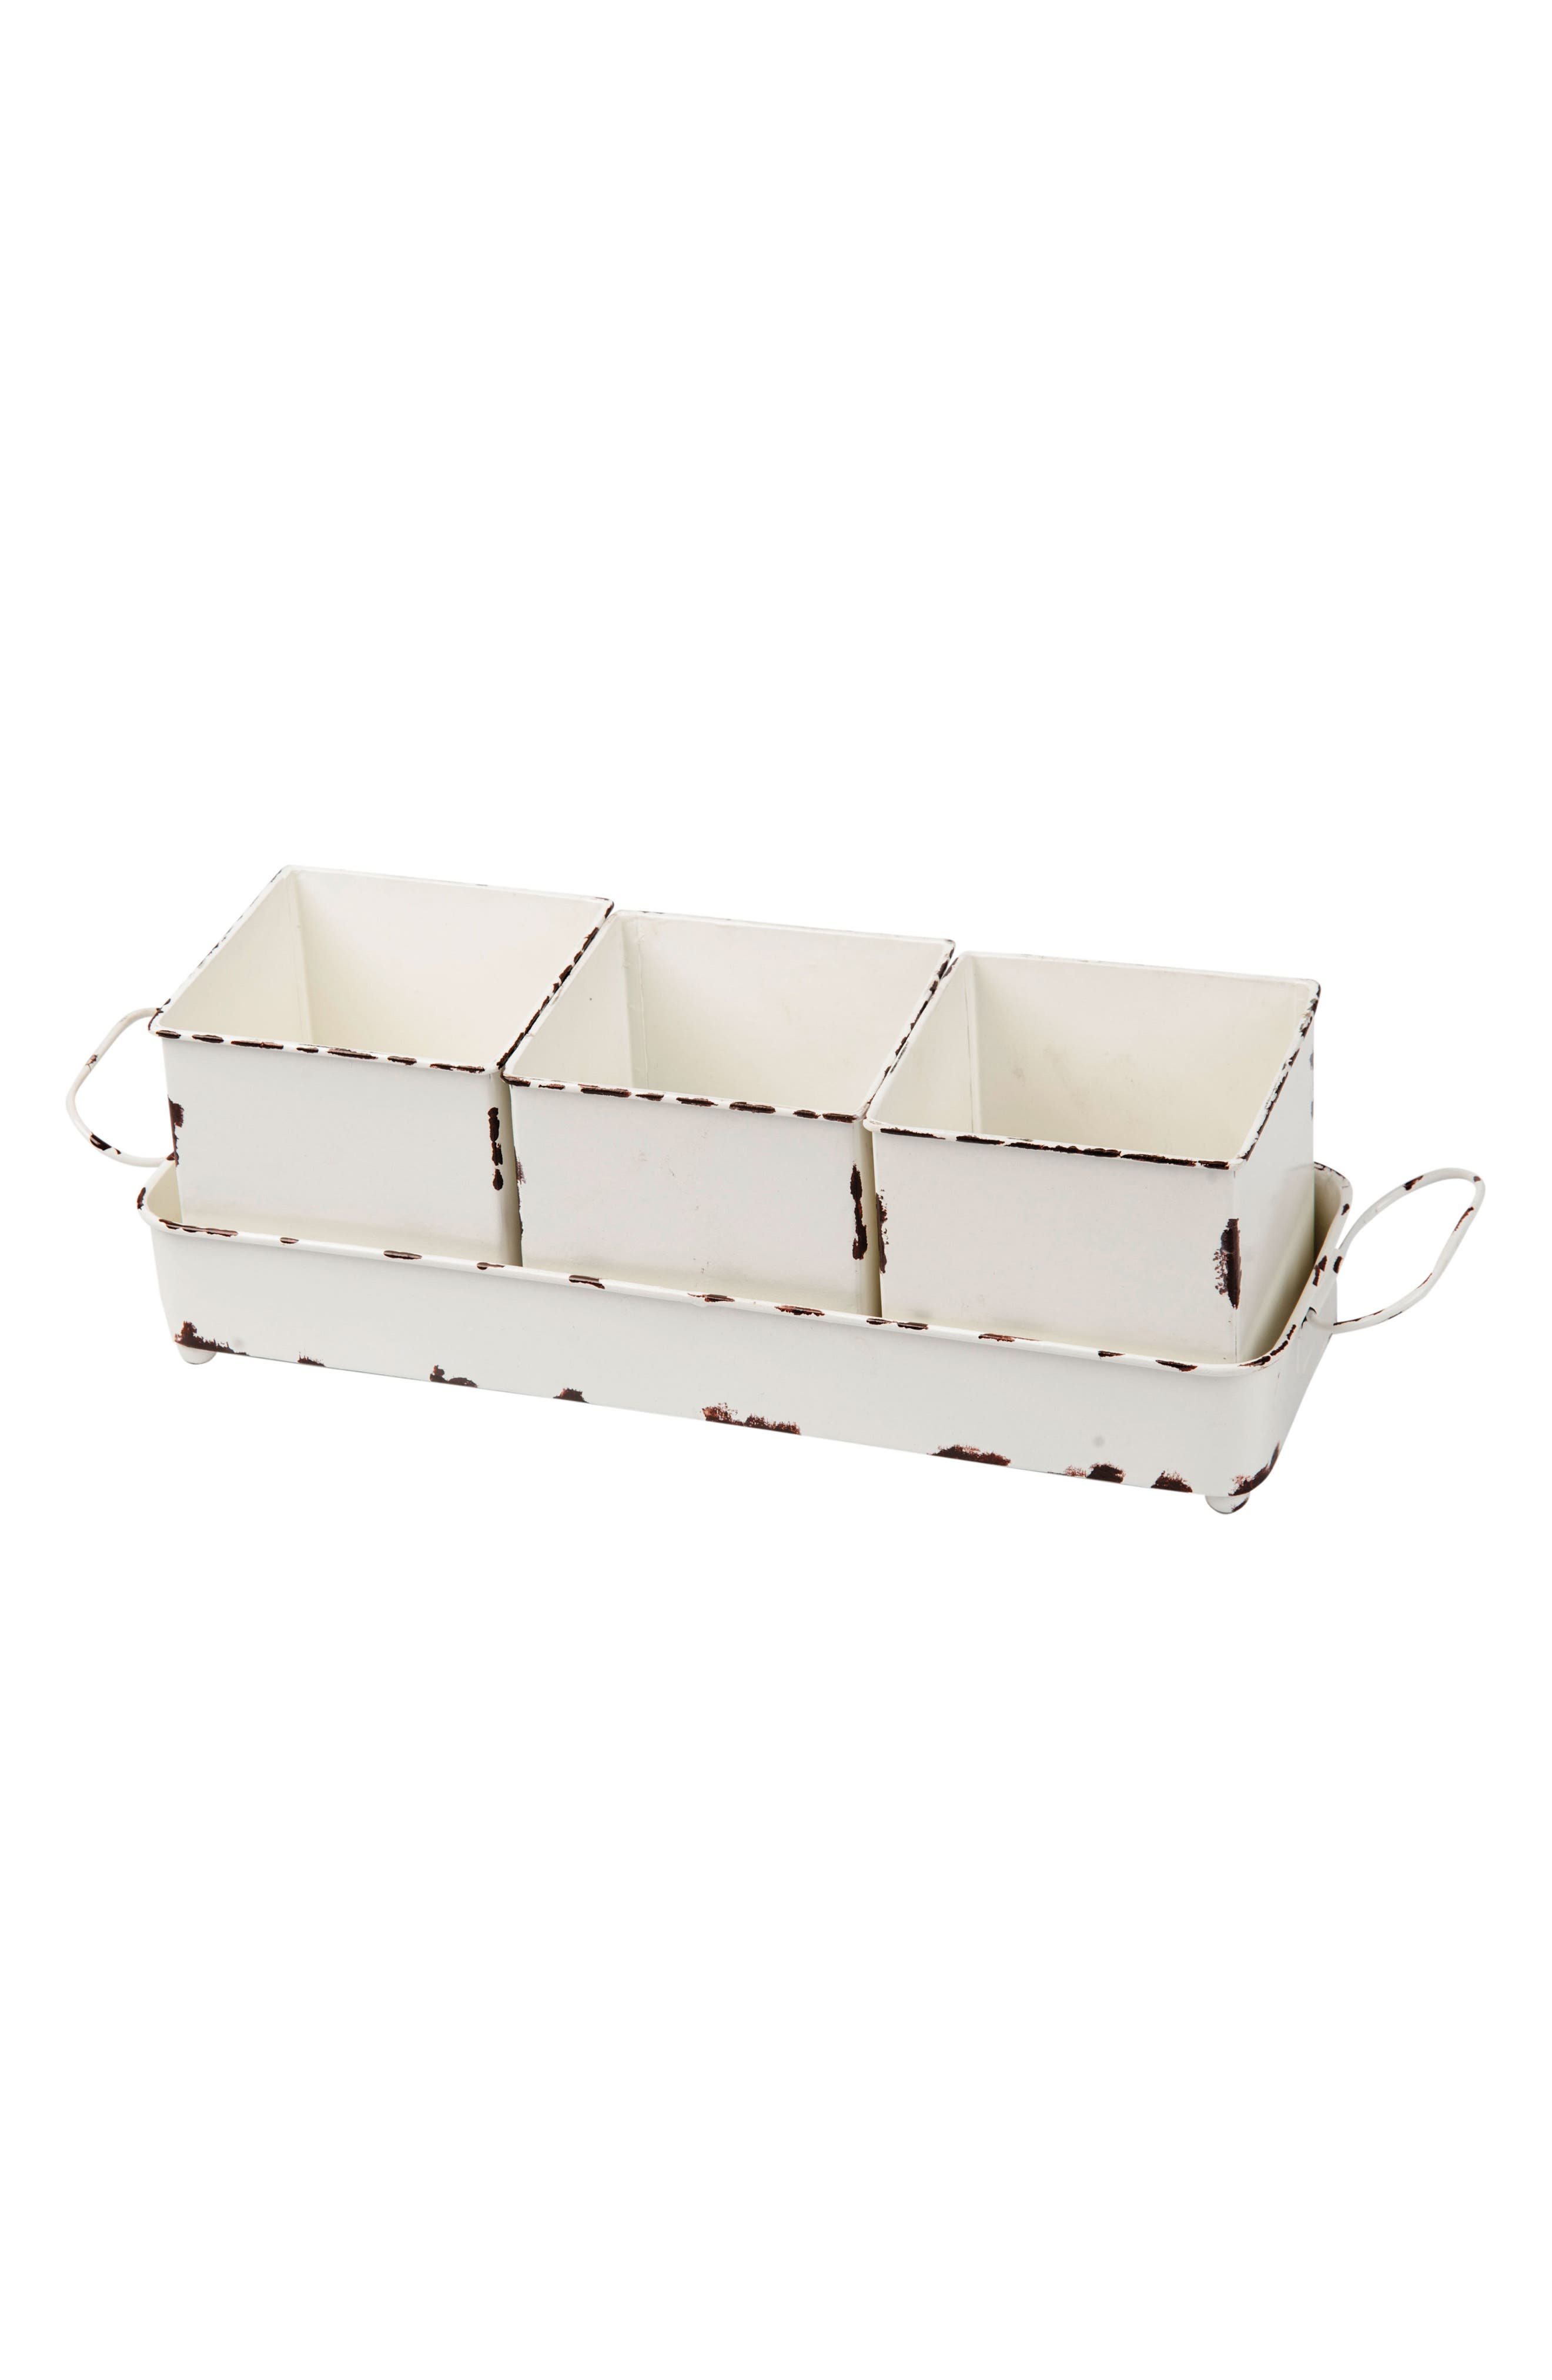 FORESIDE,                             Brook Divided Tray,                             Main thumbnail 1, color,                             WHITE/RUST